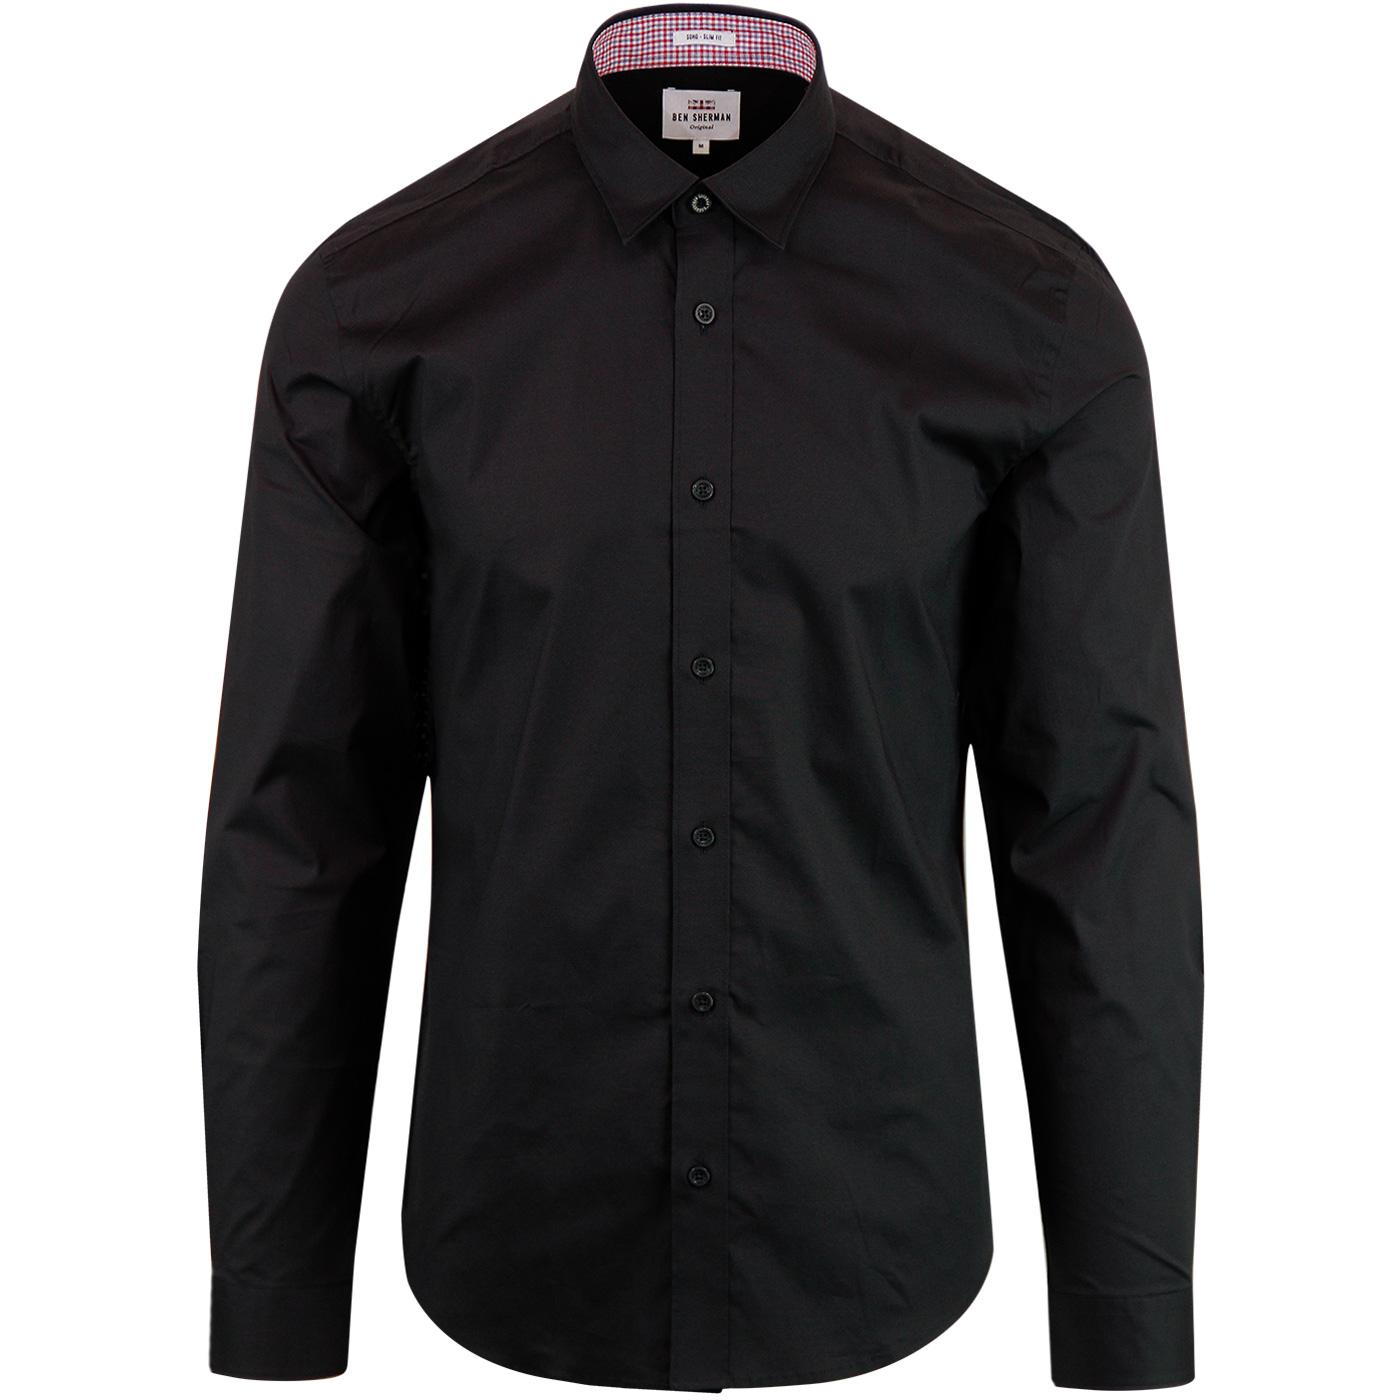 BEN SHERMAN Retro Stretch Poplin Shirt - Black